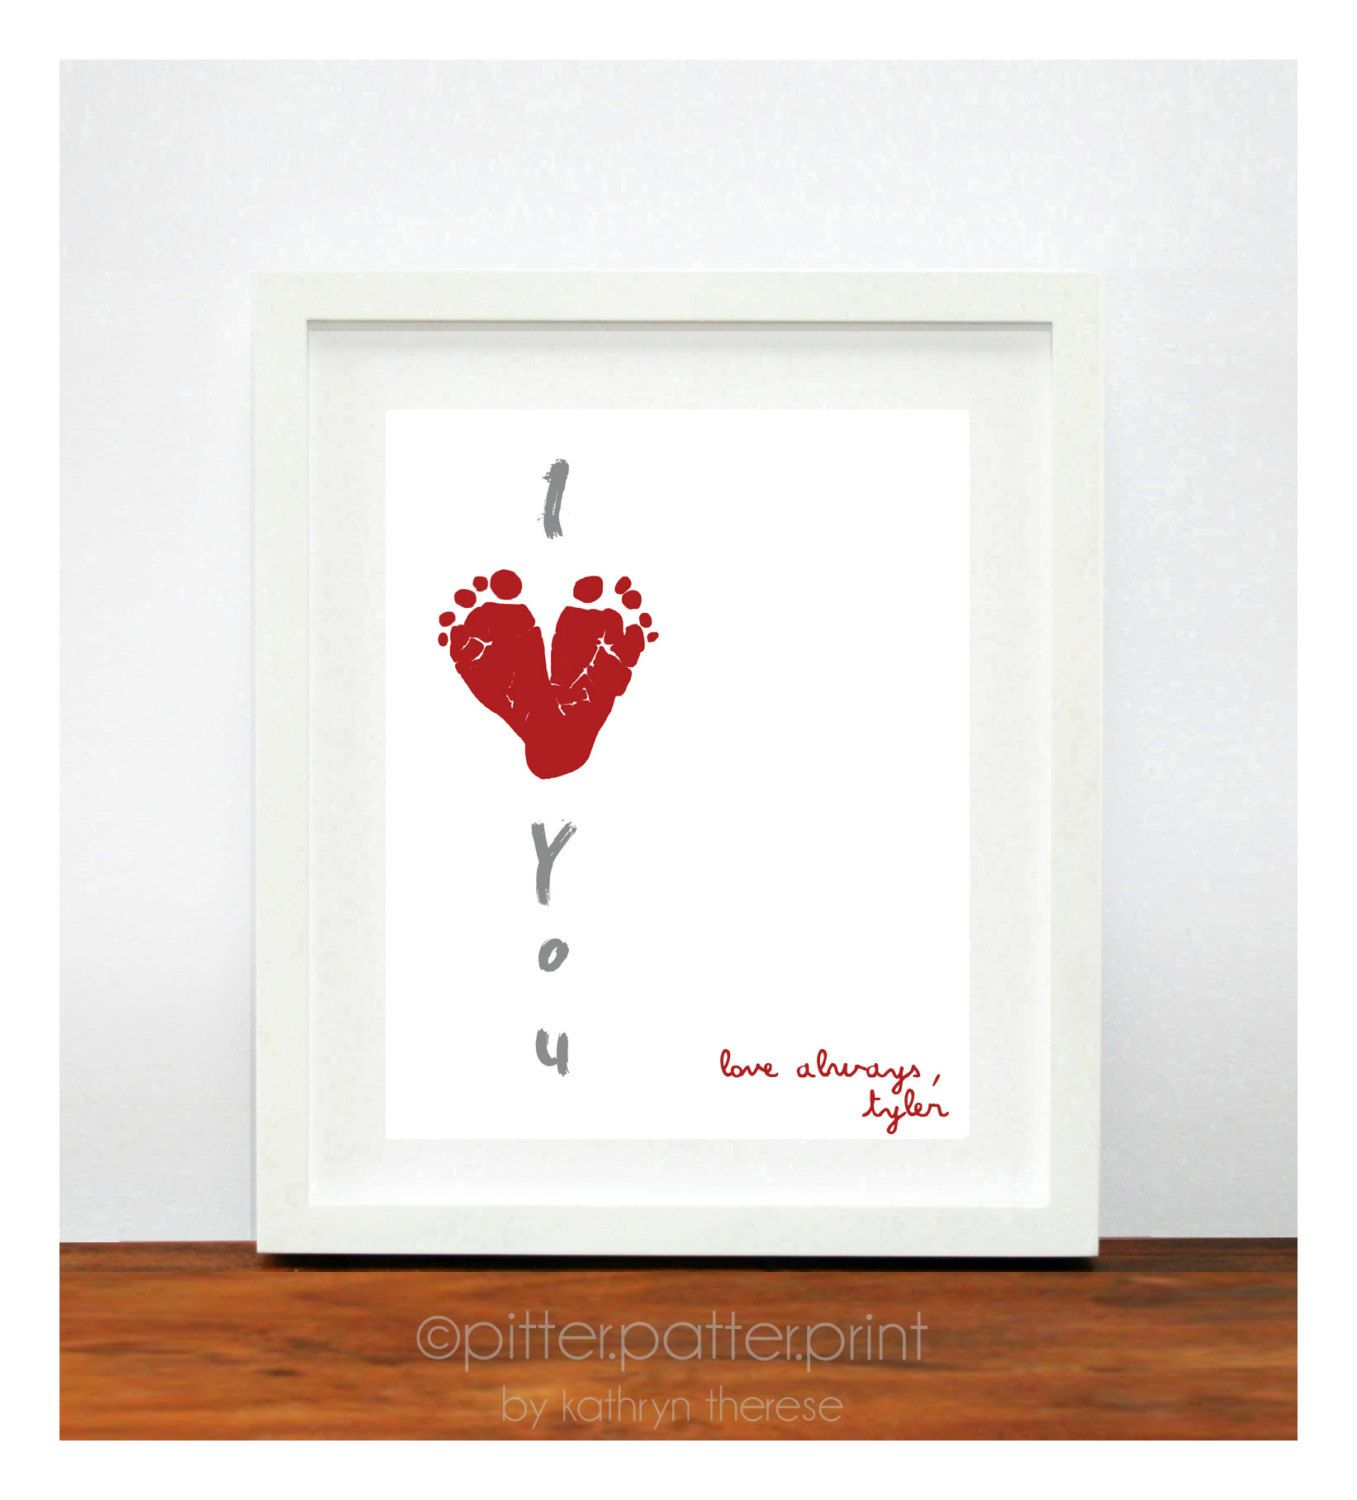 c7e3fa7bab Valentines Day print... Would be cute to do for new moms and dads at work  (in OB dept) with their sweet new baby  )